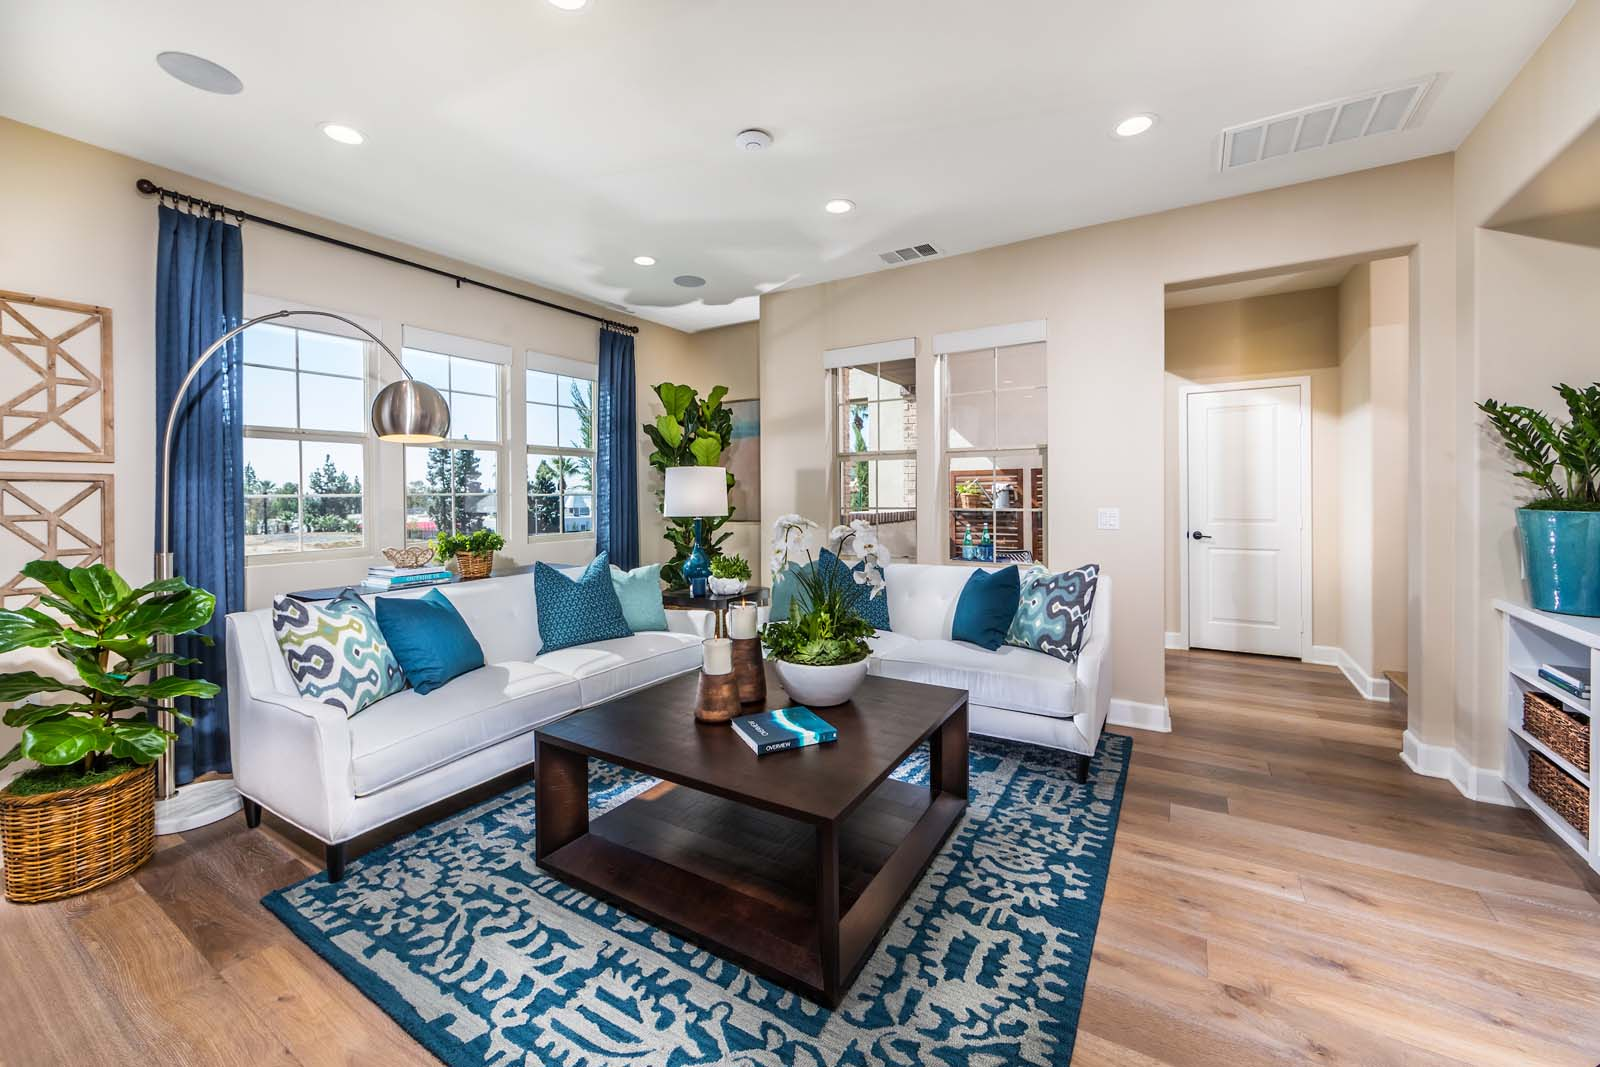 Living Room in New Azusa Towhomes for Sale